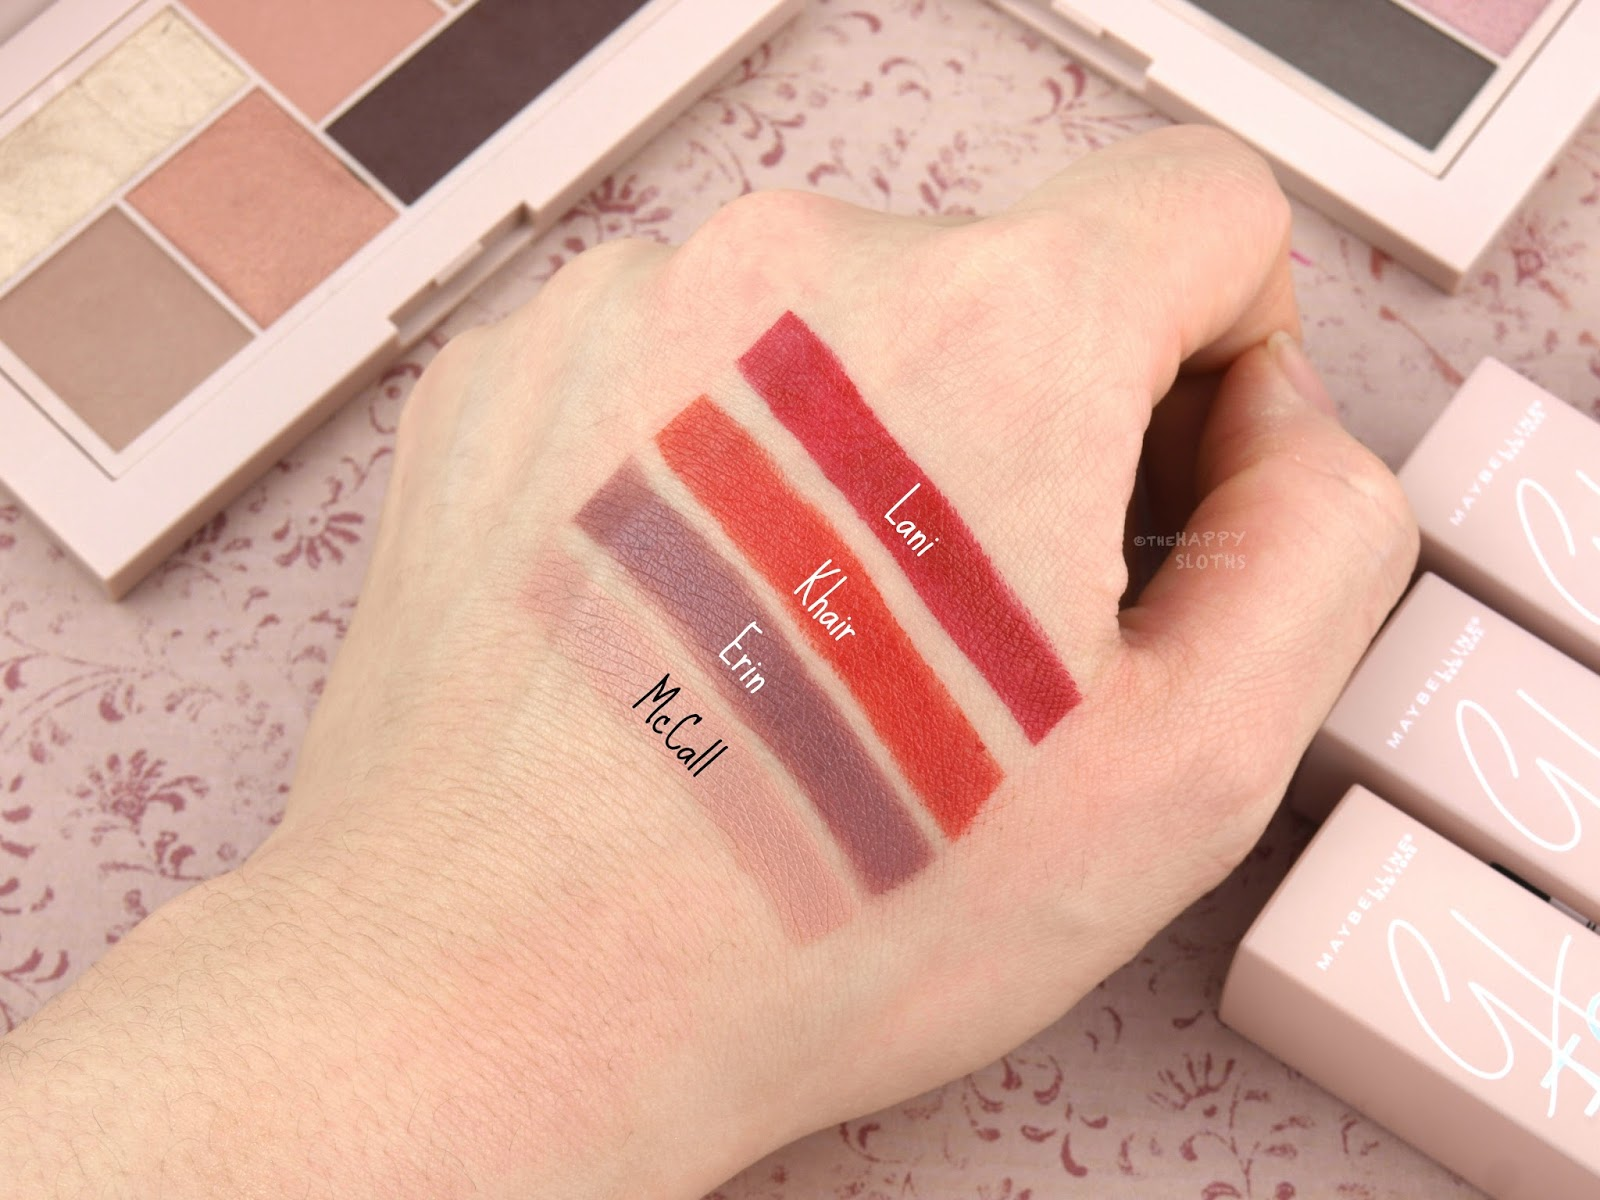 Maybelline x Gigi Hadid Lipstick: Review and Swatches